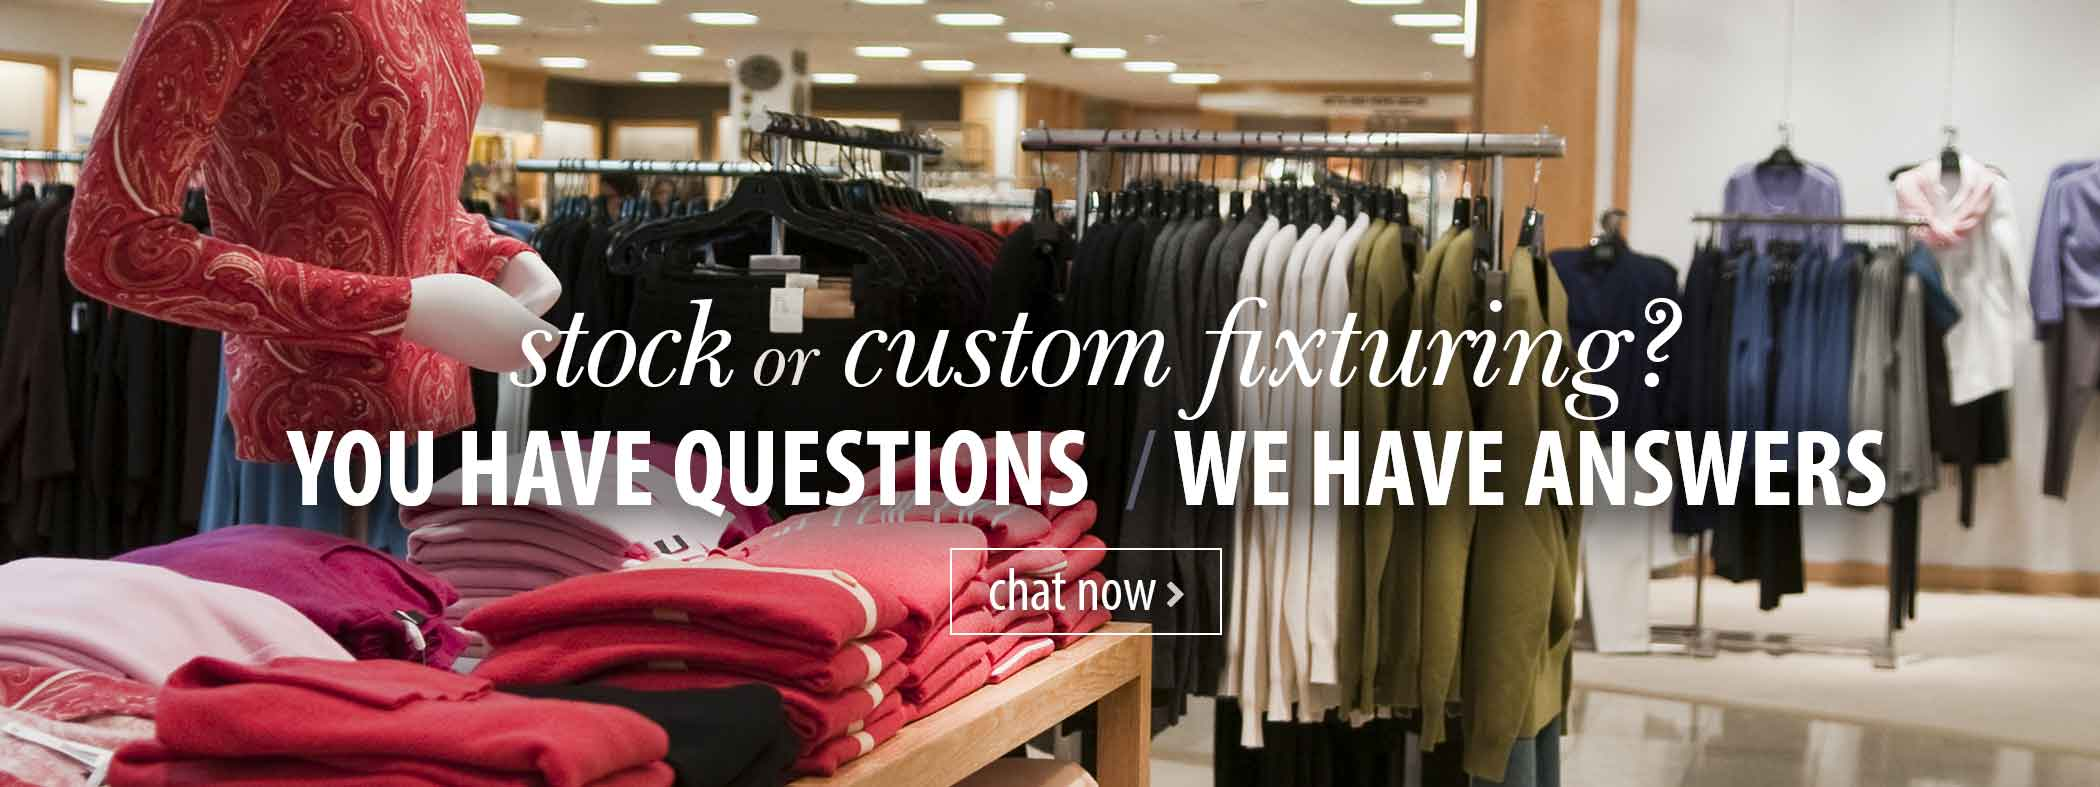 Questions - We have Answers! Chat now